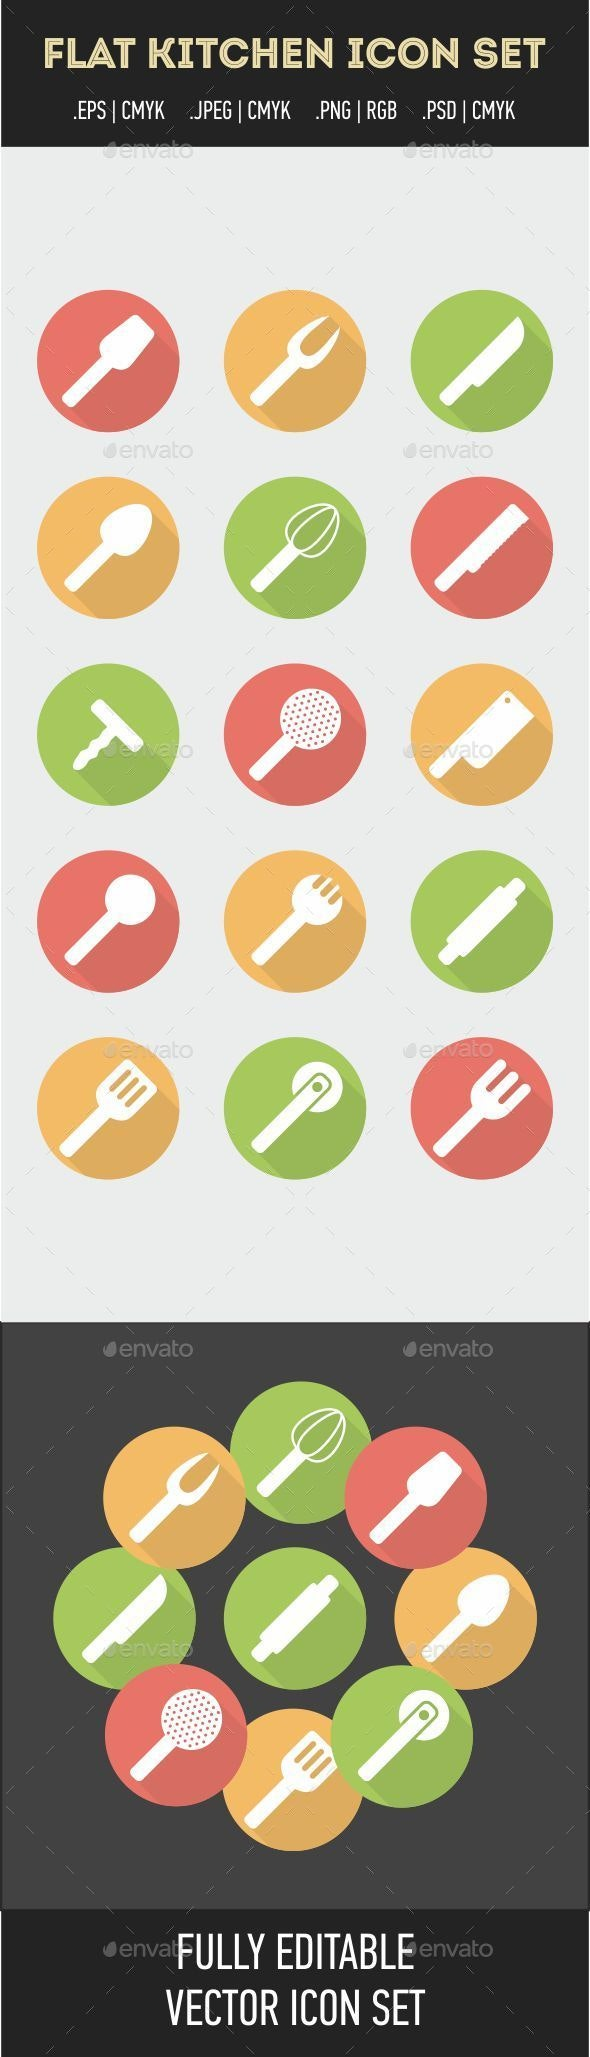 Flat Kitchen Icon Set - Food Objects